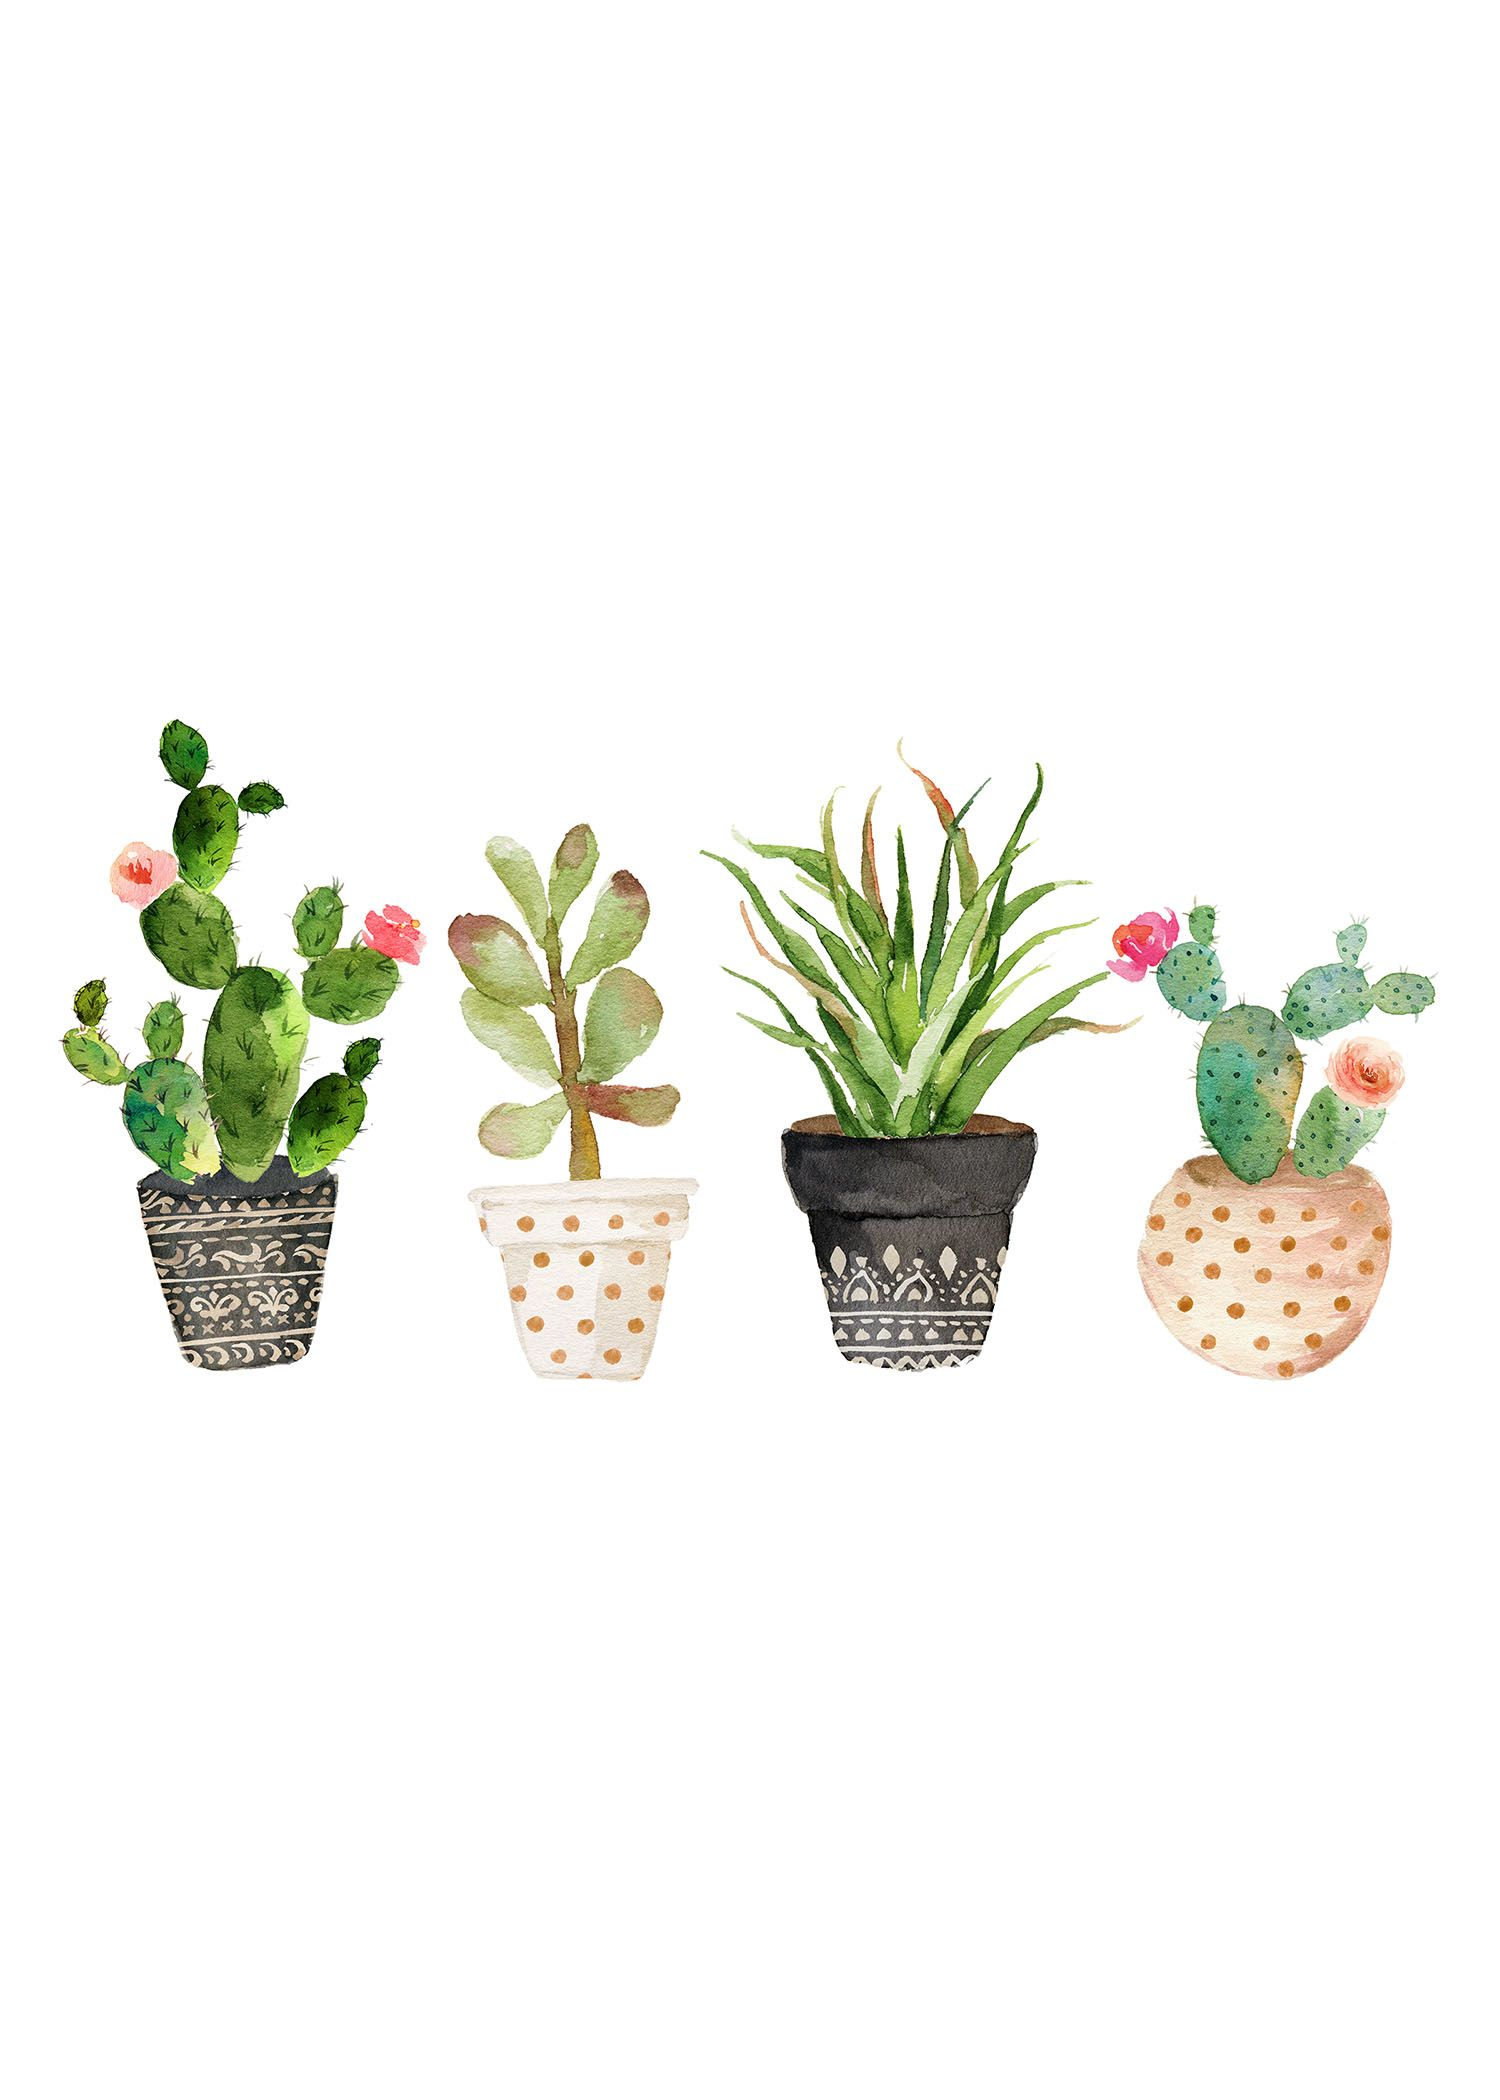 Fabulous And Fun Free Printable Succulent Wall Art The Cottage Market Succulent Wall Art Free Printable Art Free Wall Art